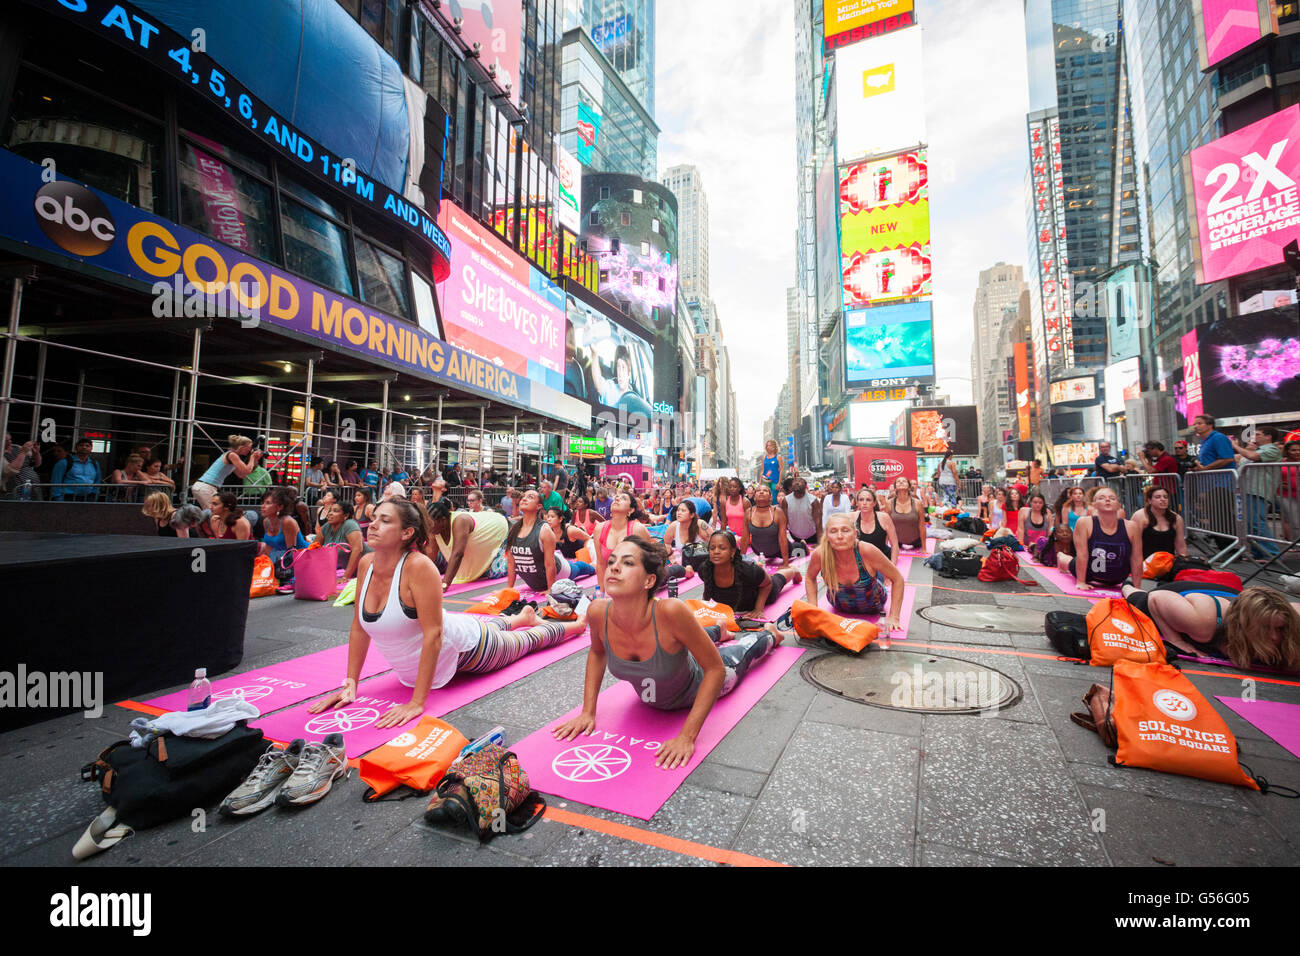 New York, USA. 20 Juin, 2016. Des milliers de pratiquants de yoga pack Times Square à New York pour pratiquer Photo Stock